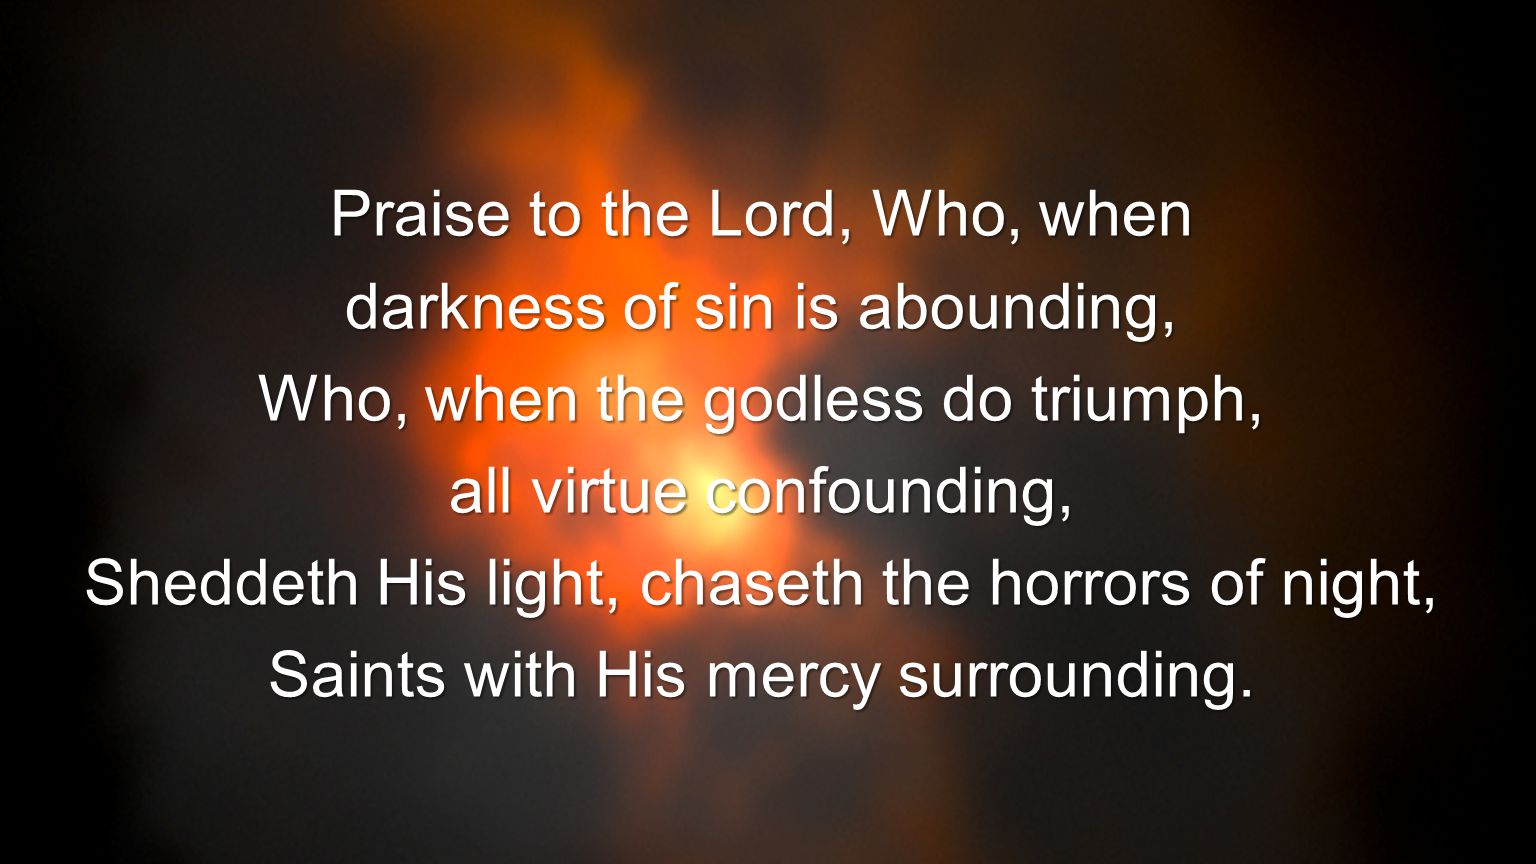 Praise to the Lord, Who, when darkness of sin is abounding,